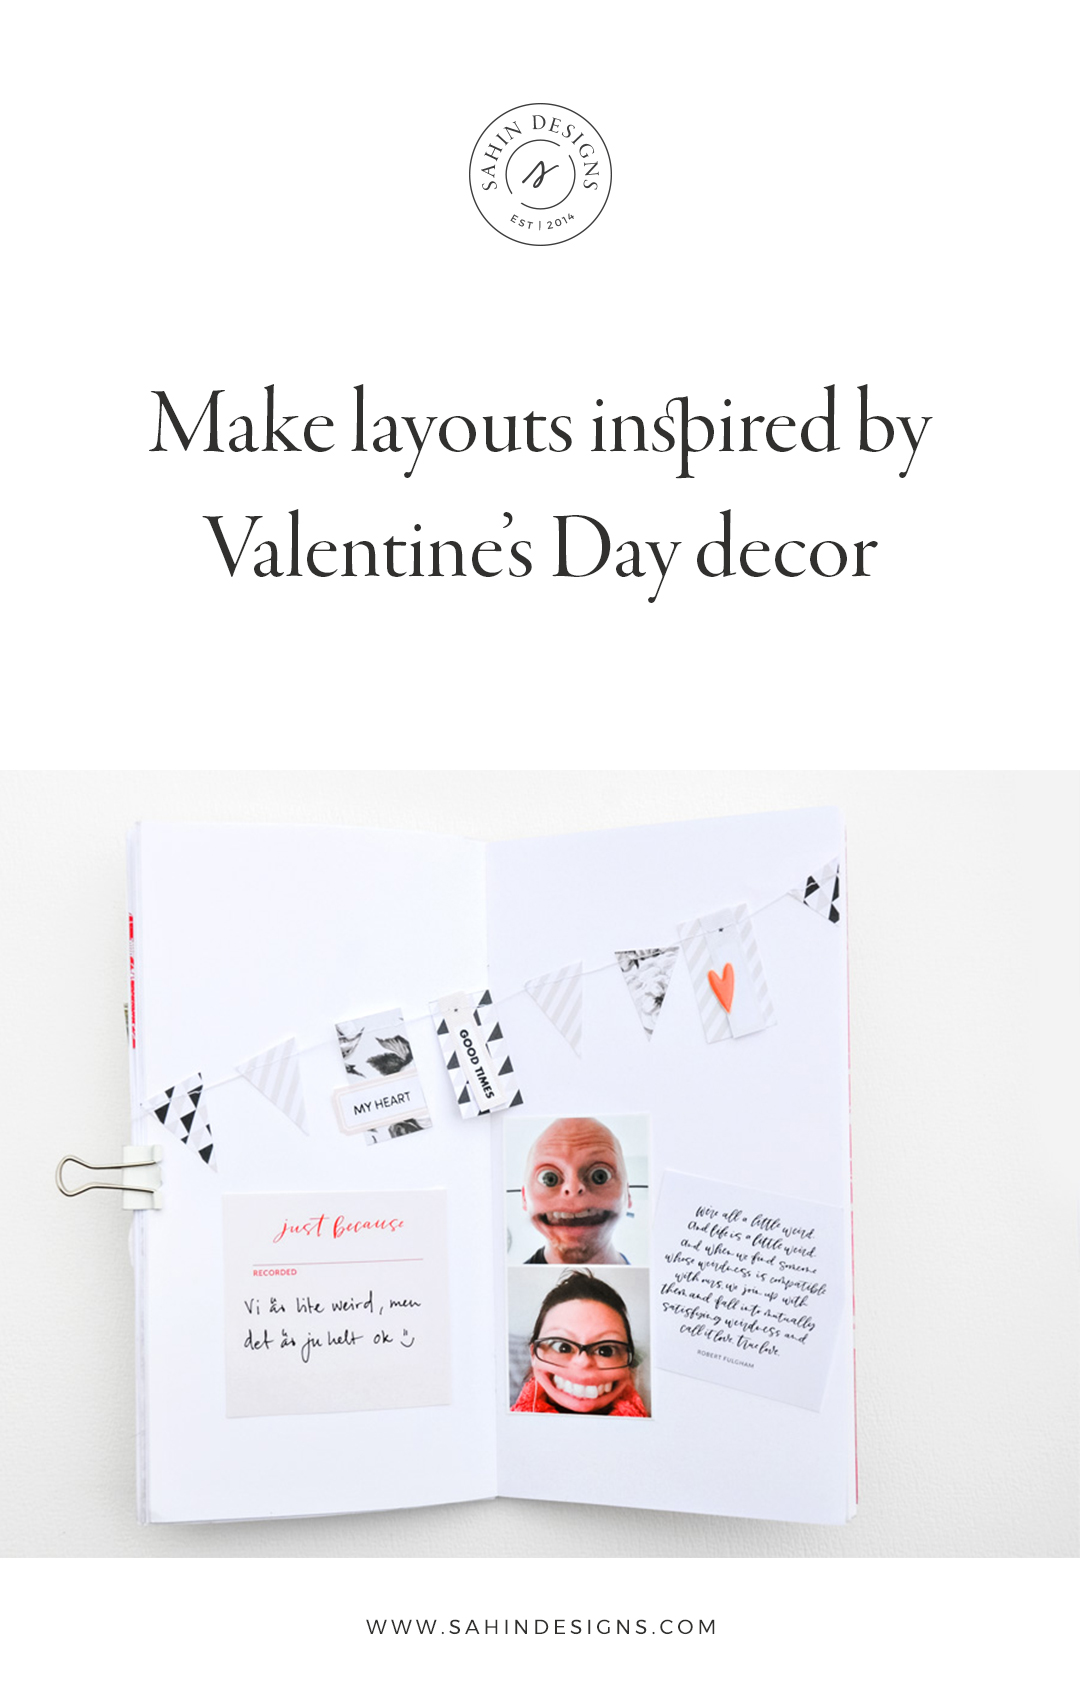 Make scrapbook layouts inspired by Valentine's Day decor - Sahin Designs